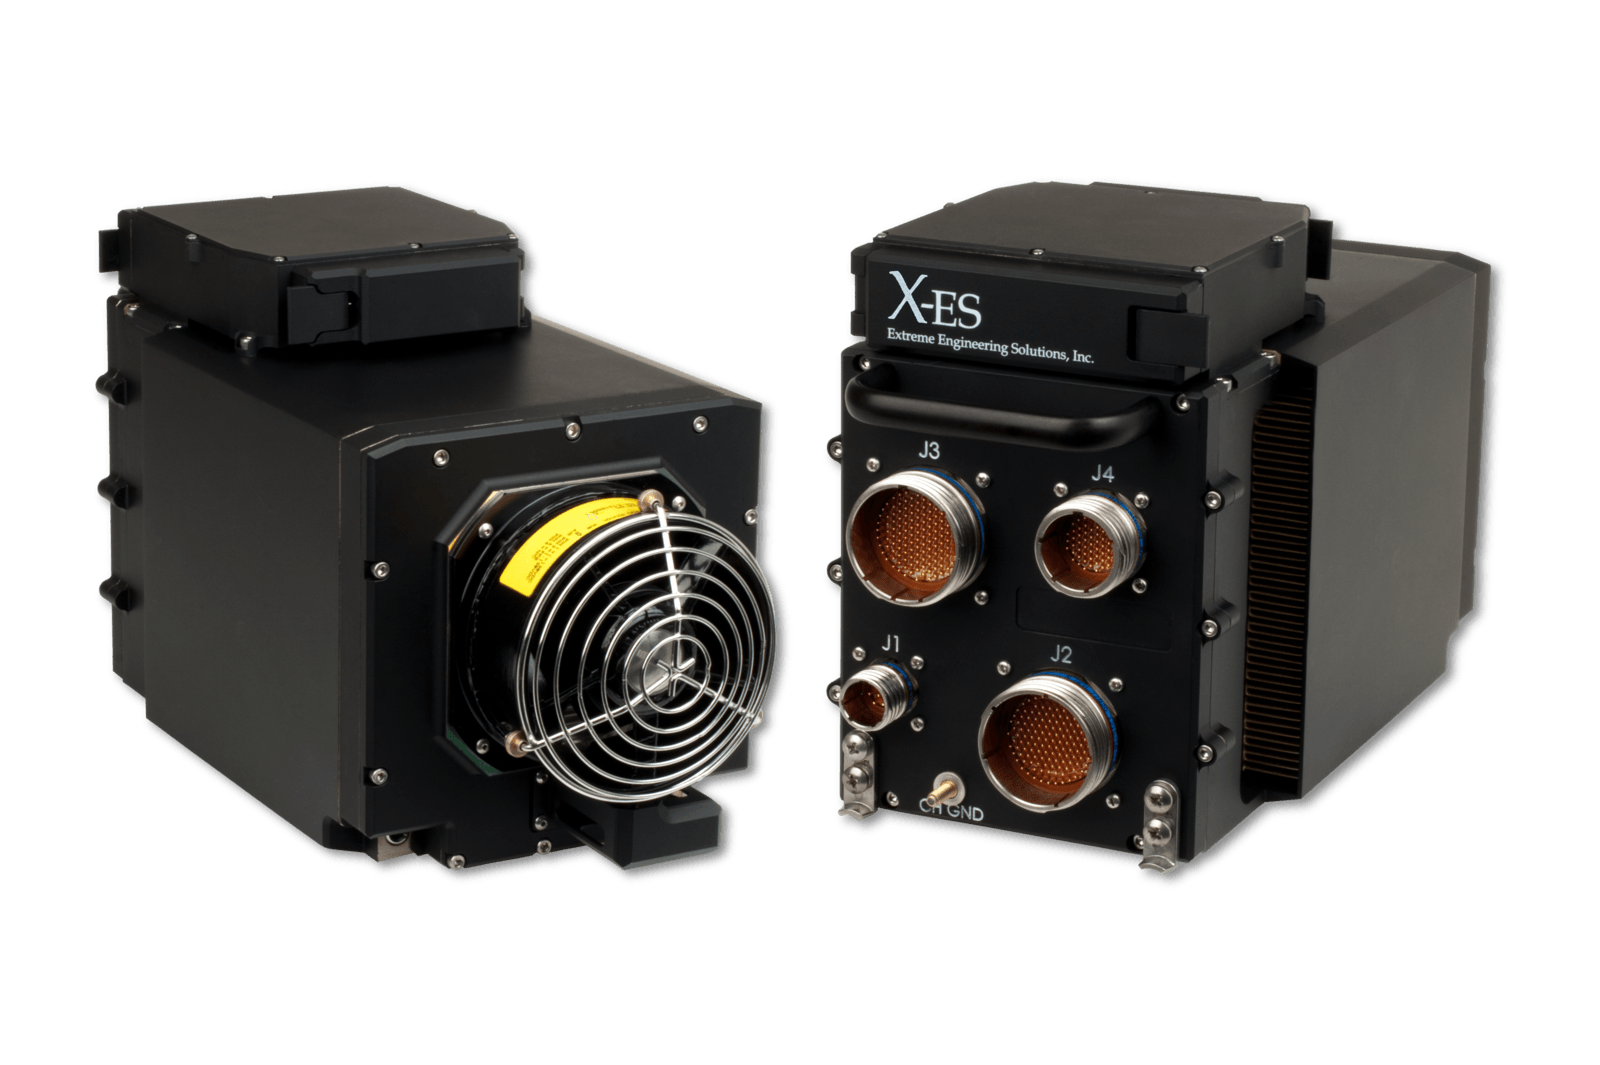 XPand4200 Series Rugged System